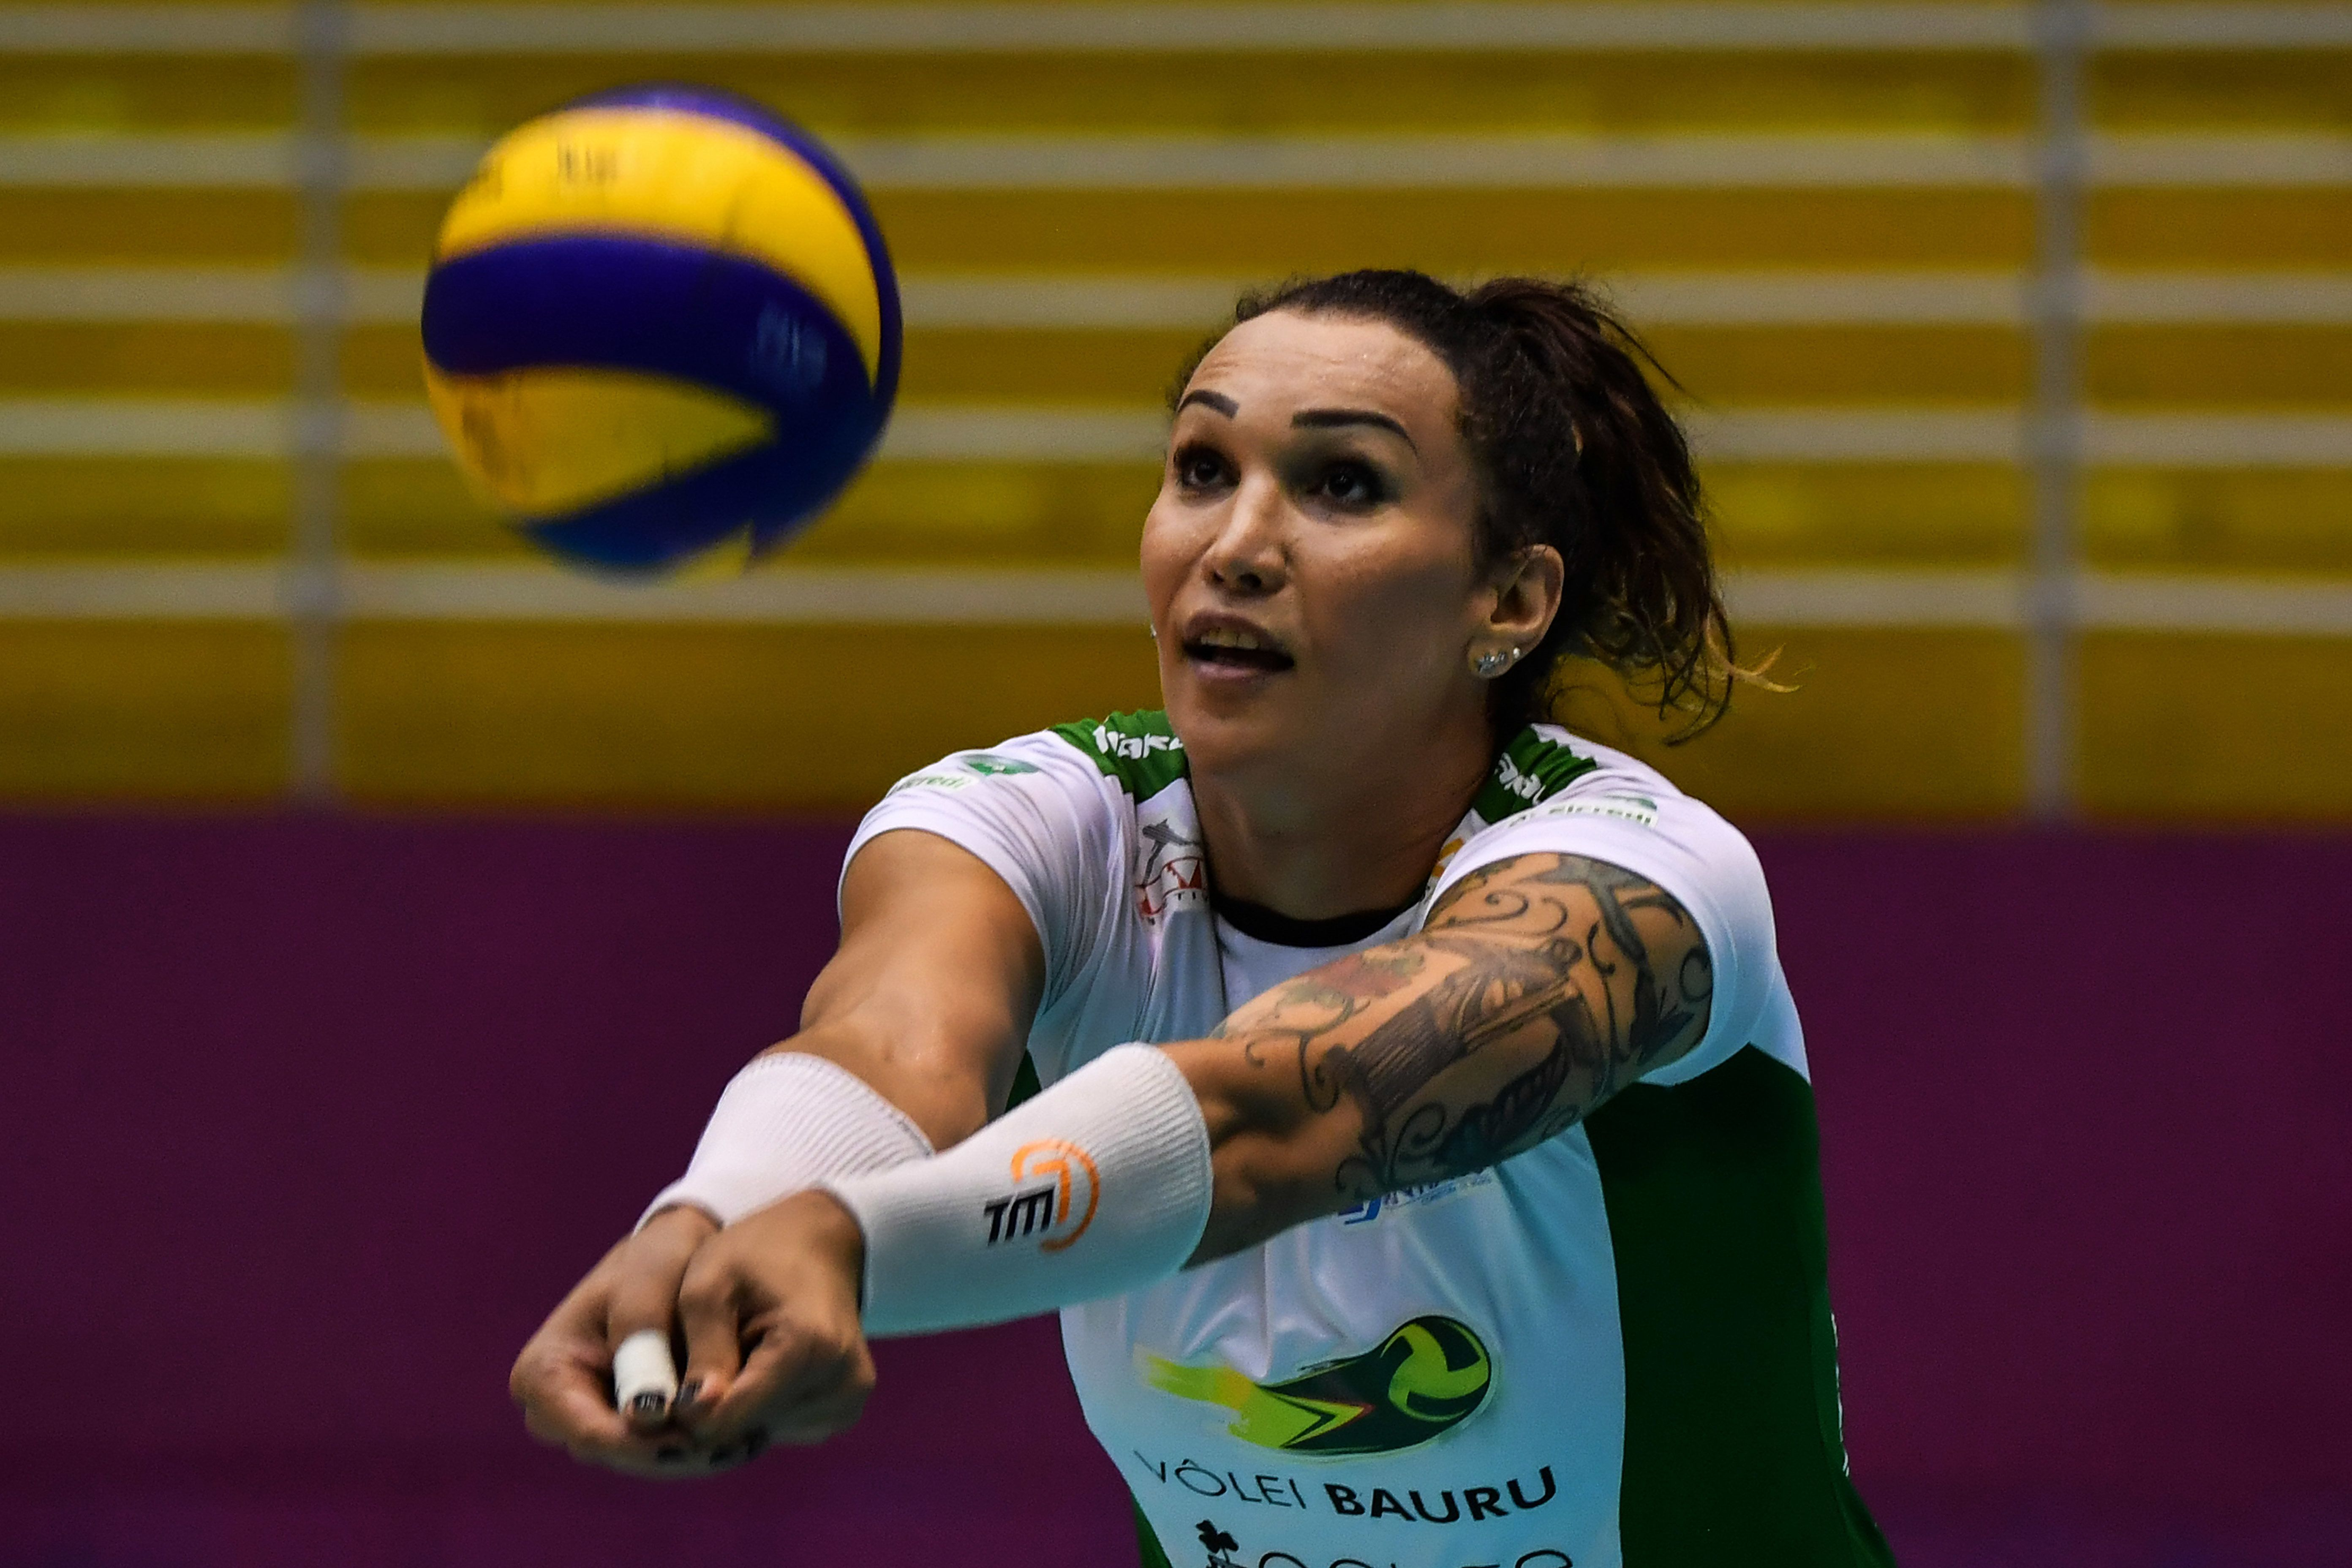 A Transgender Volleyball Star Stirs 'Unfounded' Criticism In Brazil